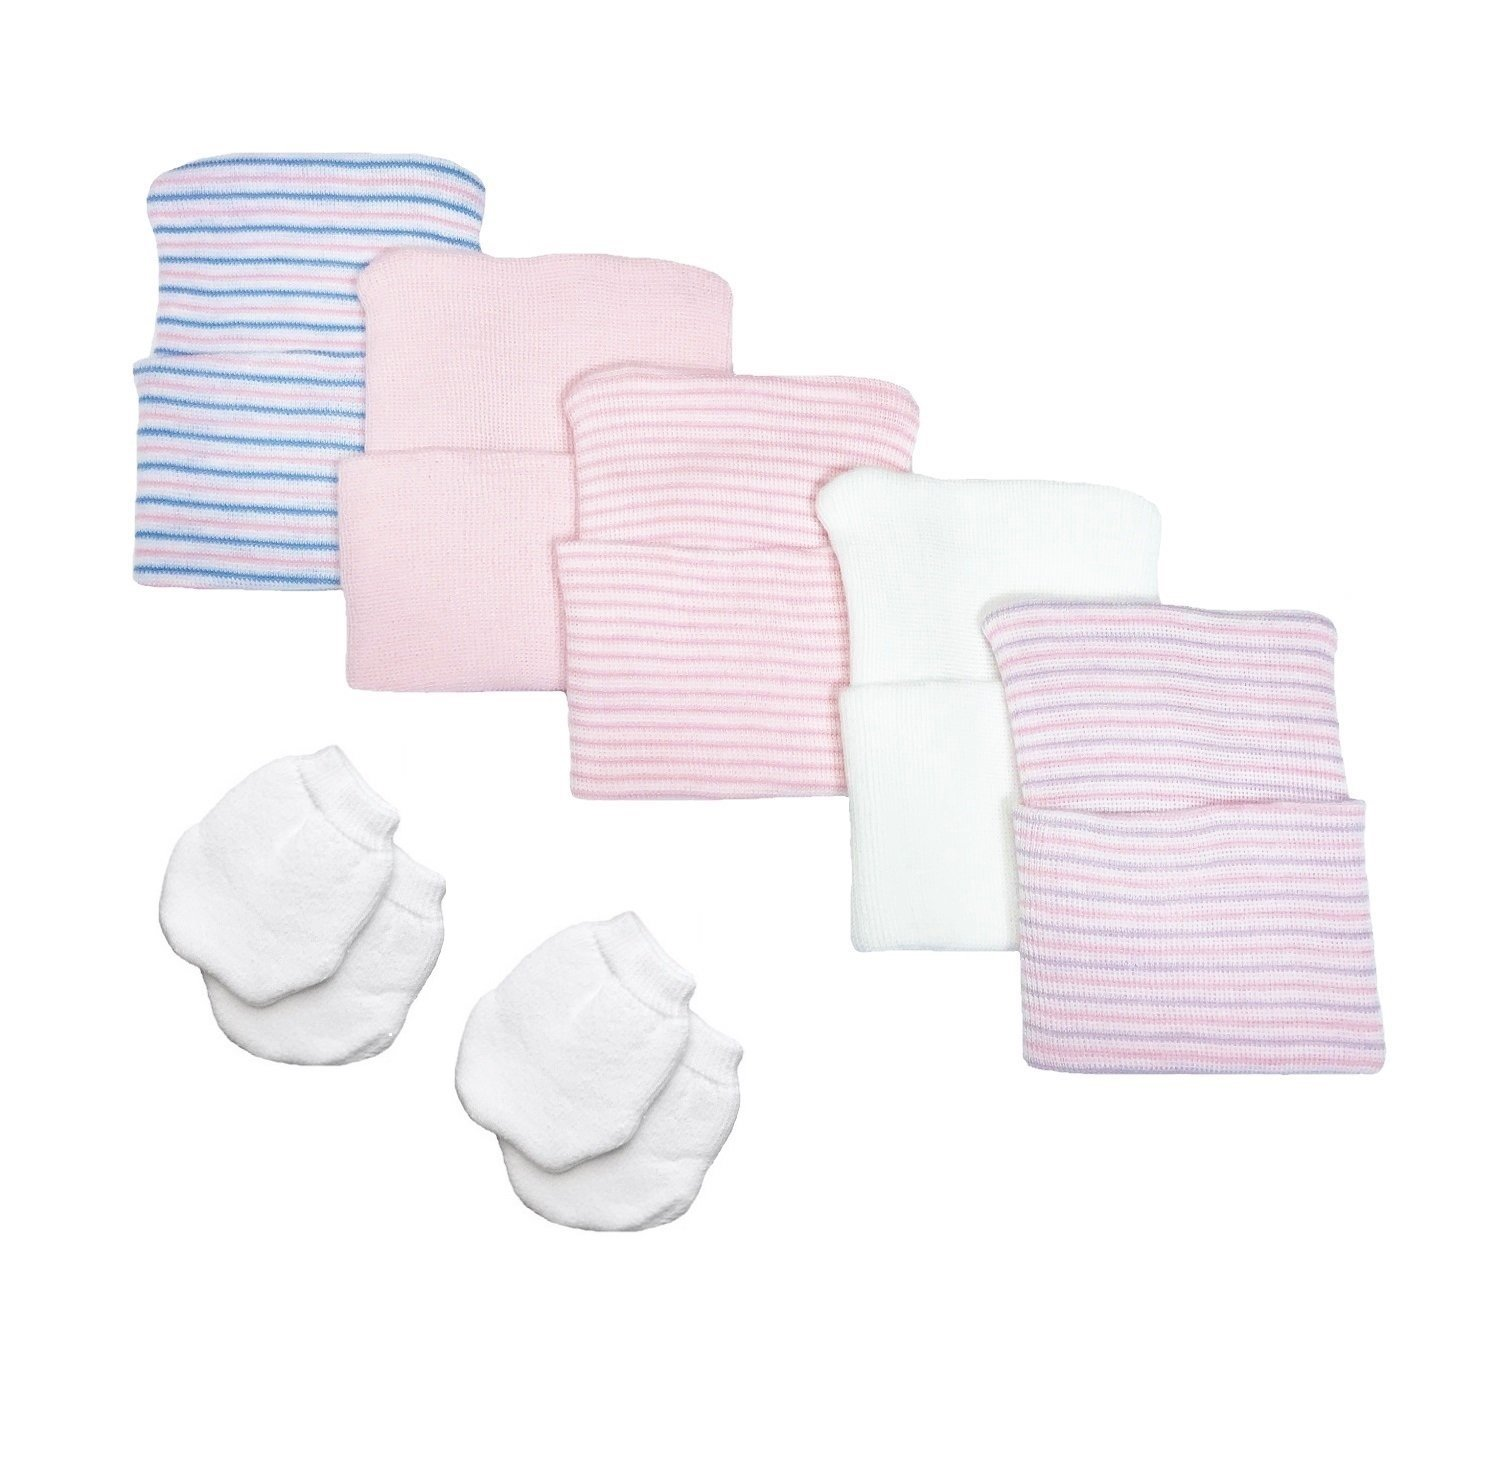 38e9af498a59 Amazon.com  5 Piece Hospital Hat   Mitten Set for Newborn Baby (Girl) by  Nurses Choice  Baby